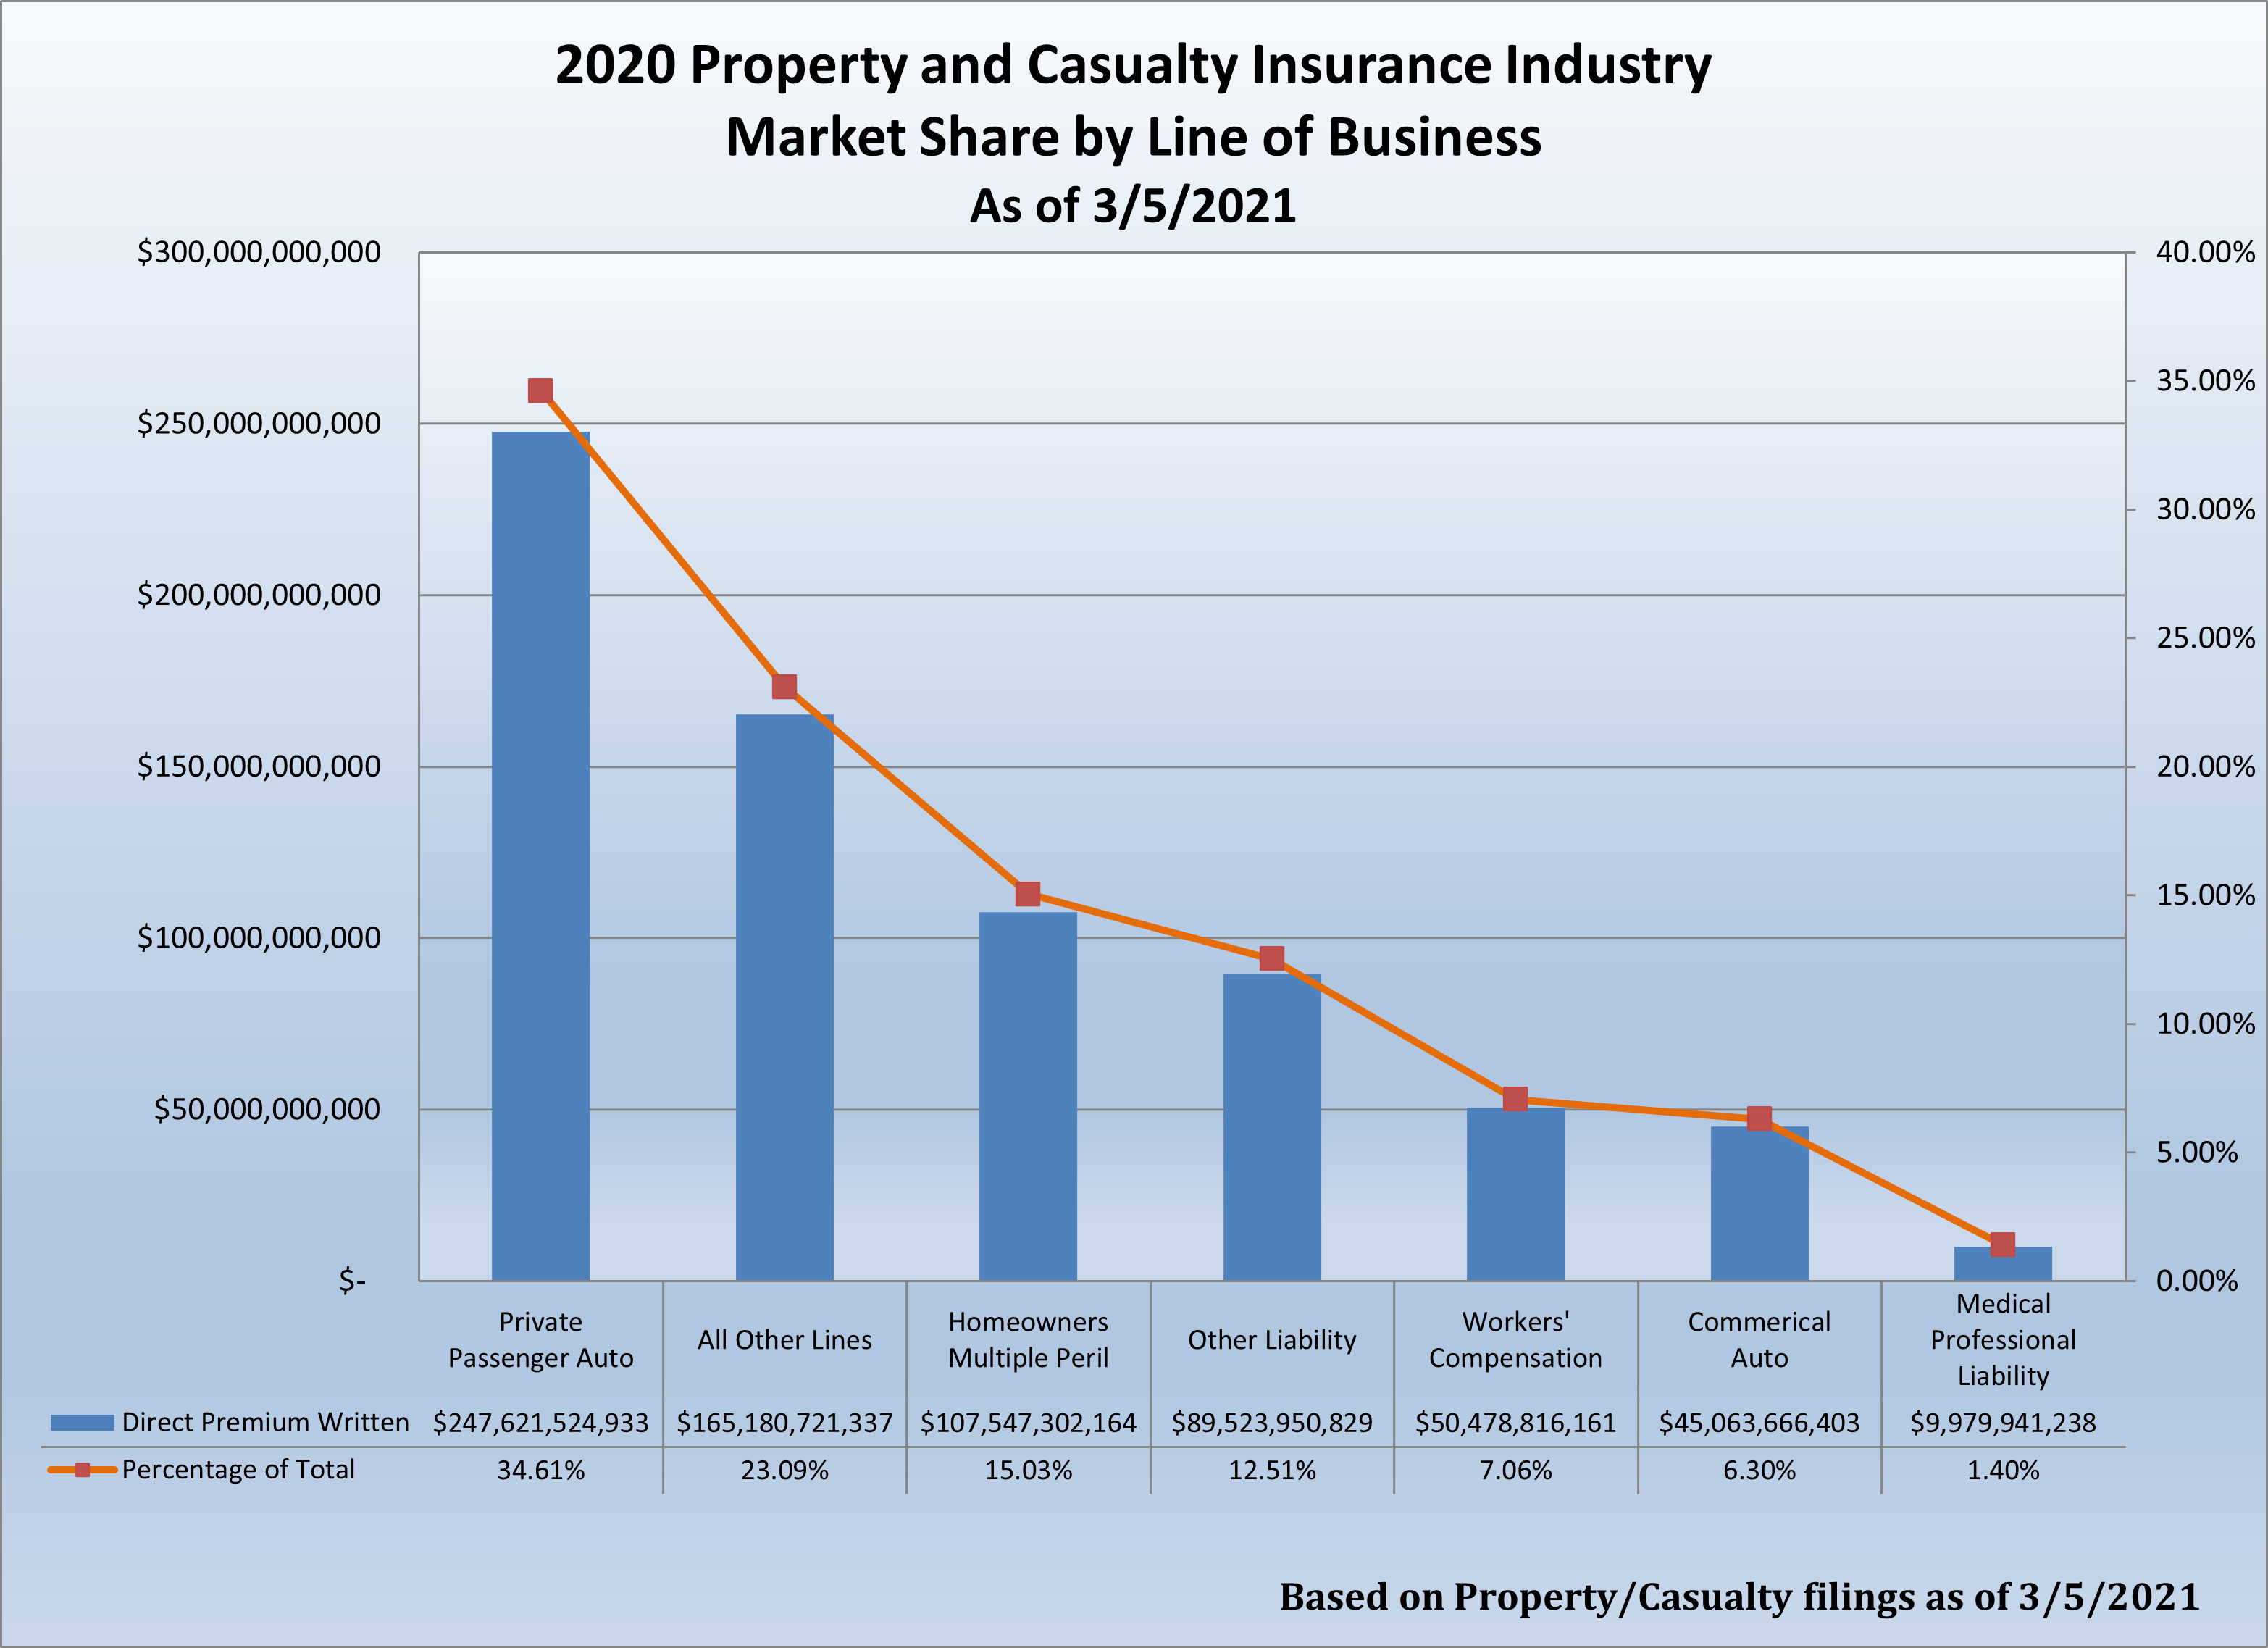 2020 Property and Casualty Insurance Industry Marketshare Graph